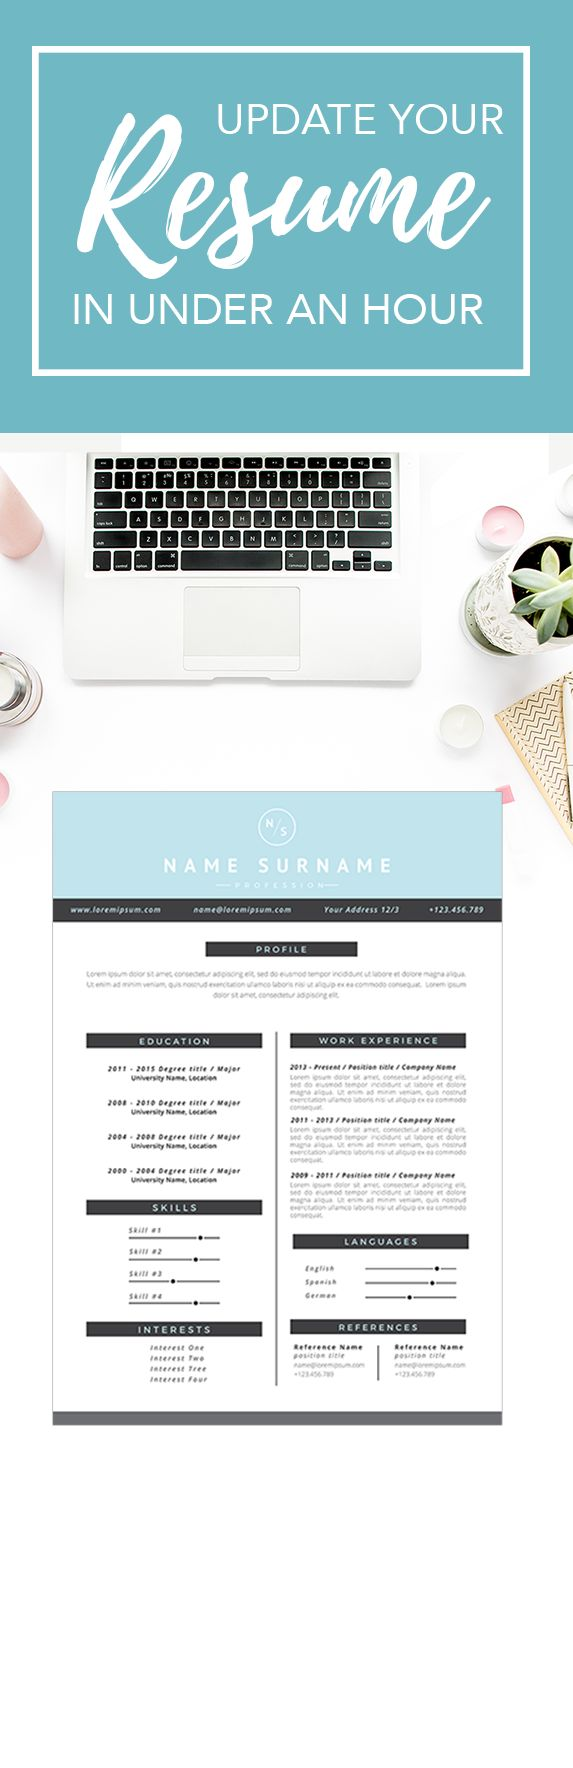 25 best ideas about business resume on pinterest resume tips job info and job search - Best Resume Tips